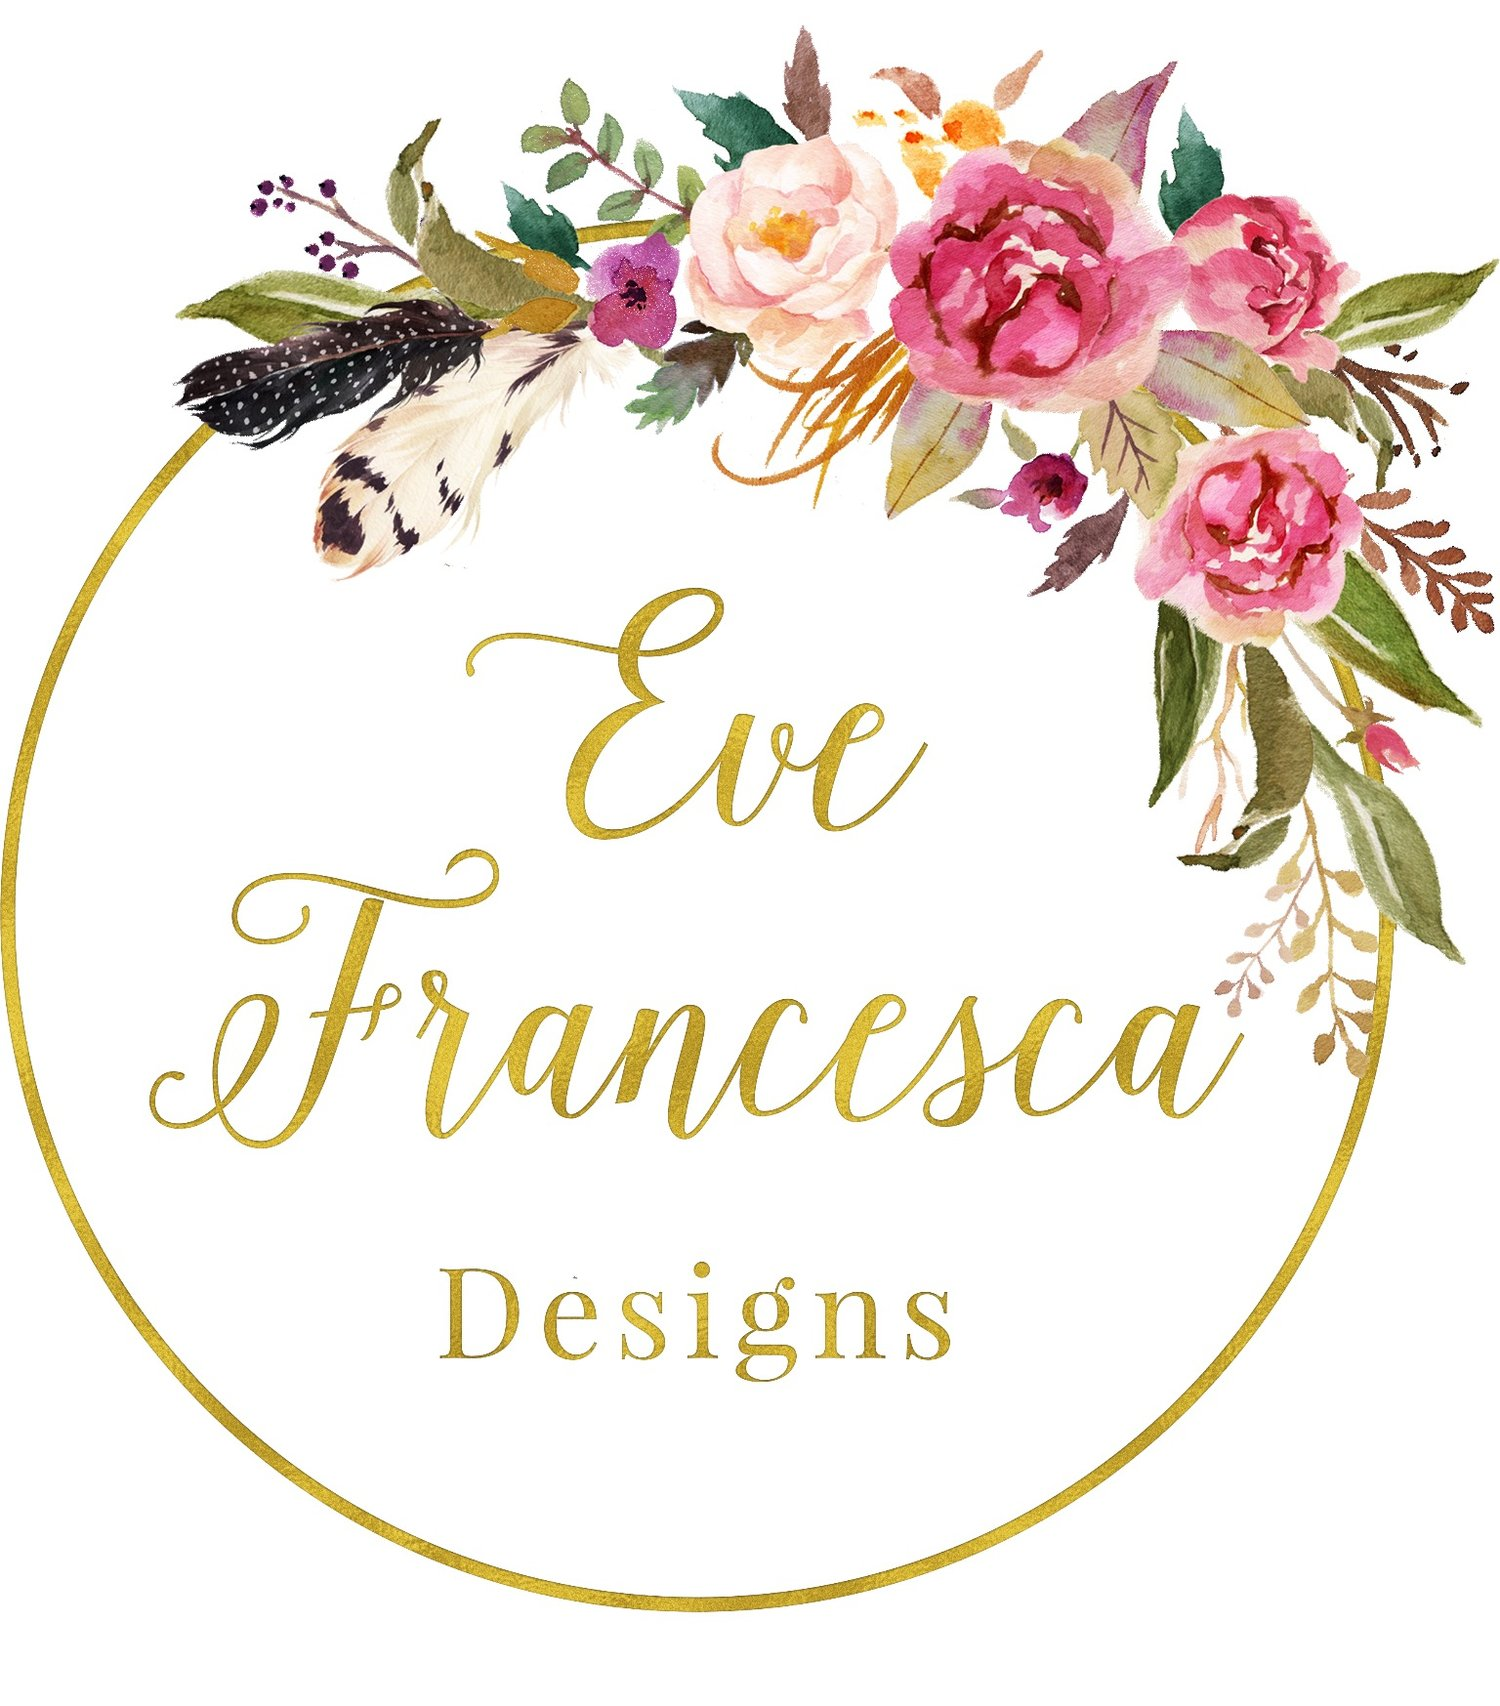 Eve Francesca Designs